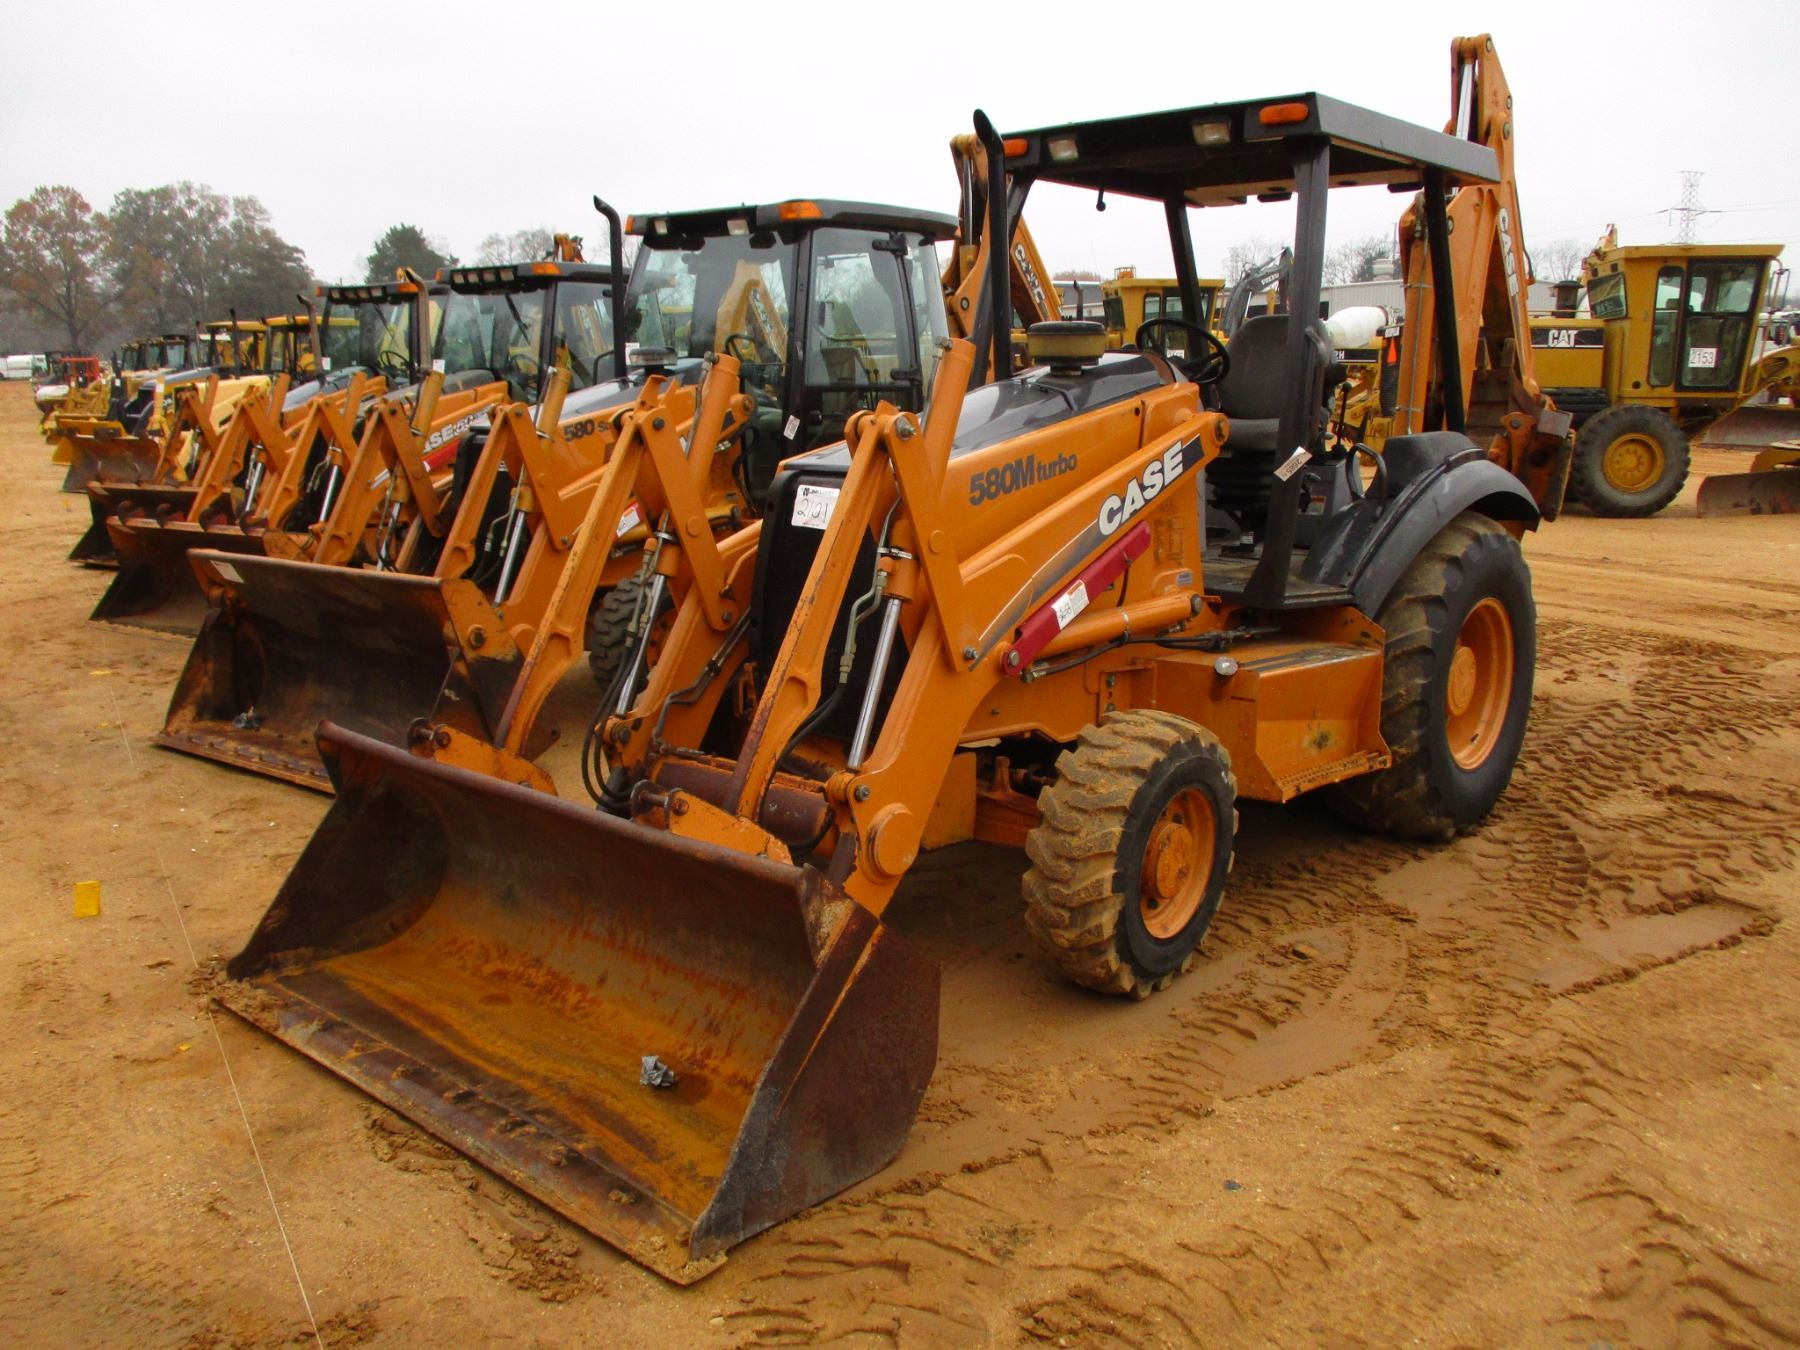 medium resolution of image 1 2003 case 580m loader backhoe vin sn jjg0309088 4x4